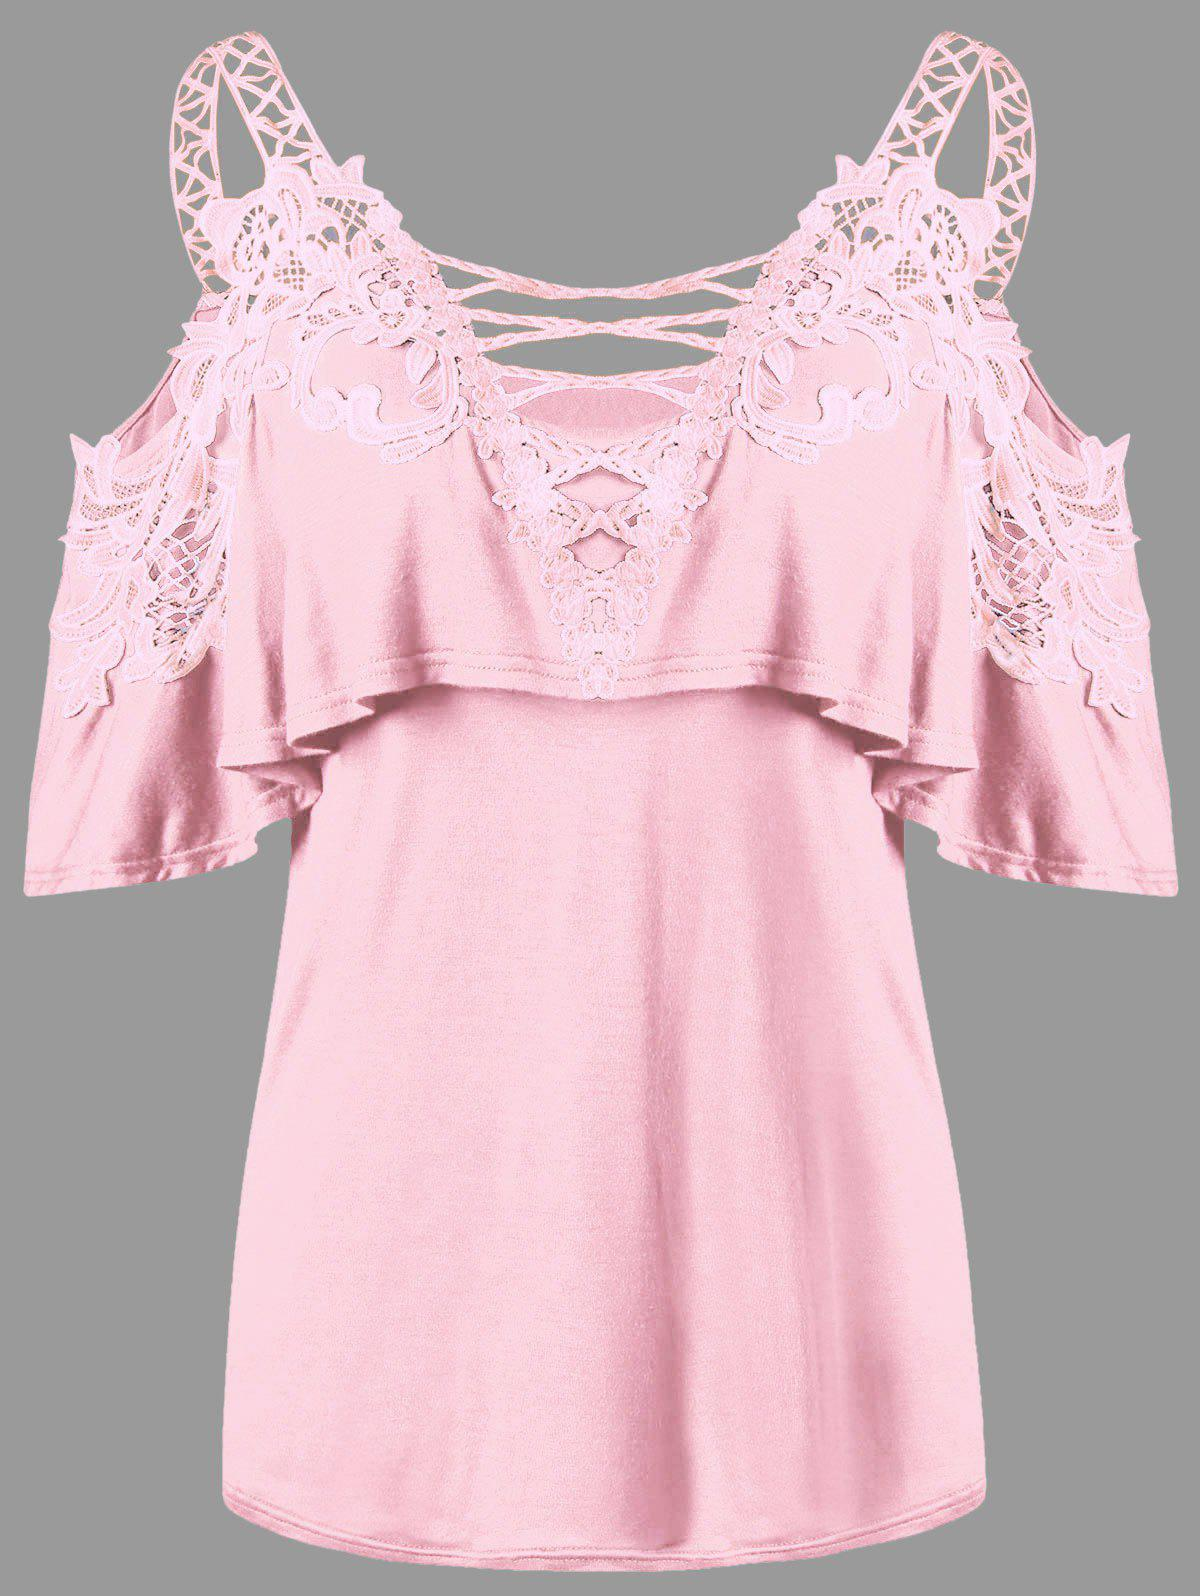 Dew Shoulder Overlay Applique T-shirt - PINK 2XL